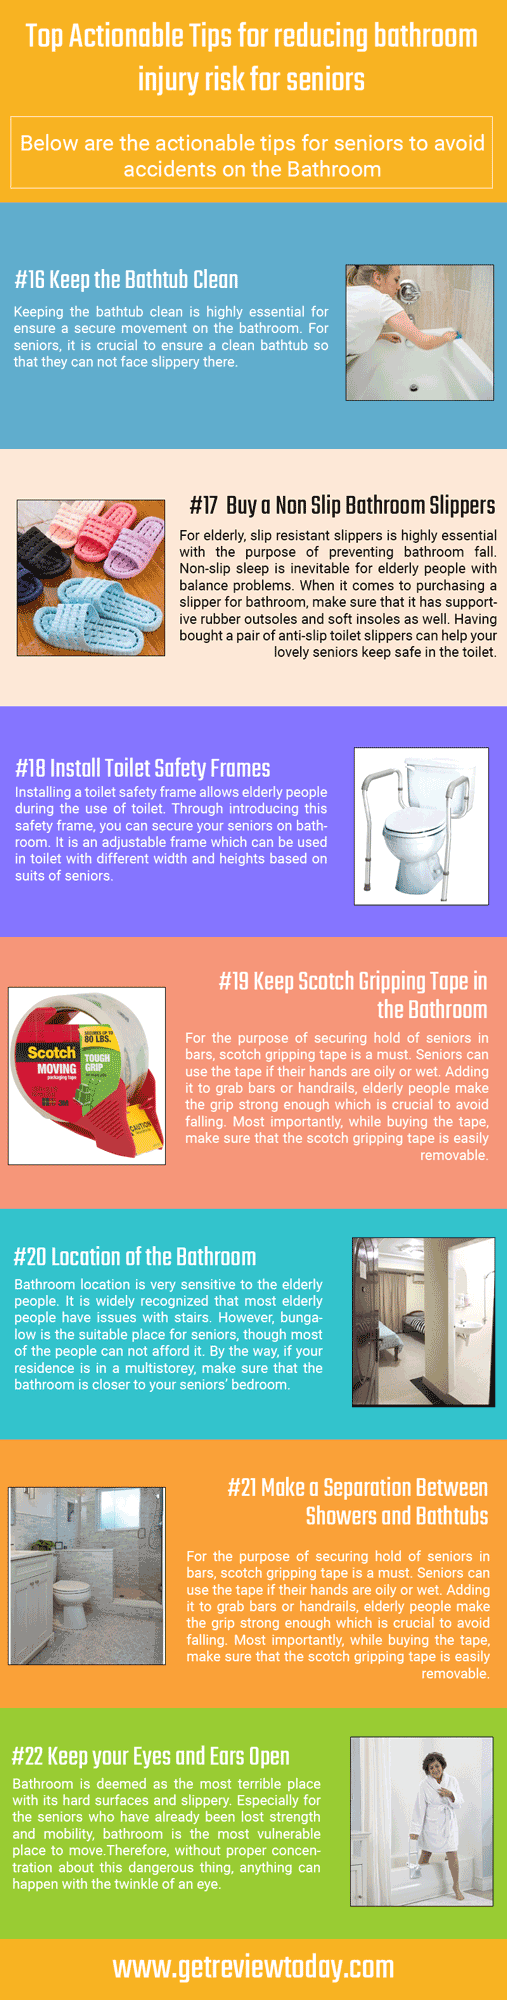 Bathroom Safety Tips For Seniors Bathroom Safety Safety Tips Centers For Disease Control And Prevention